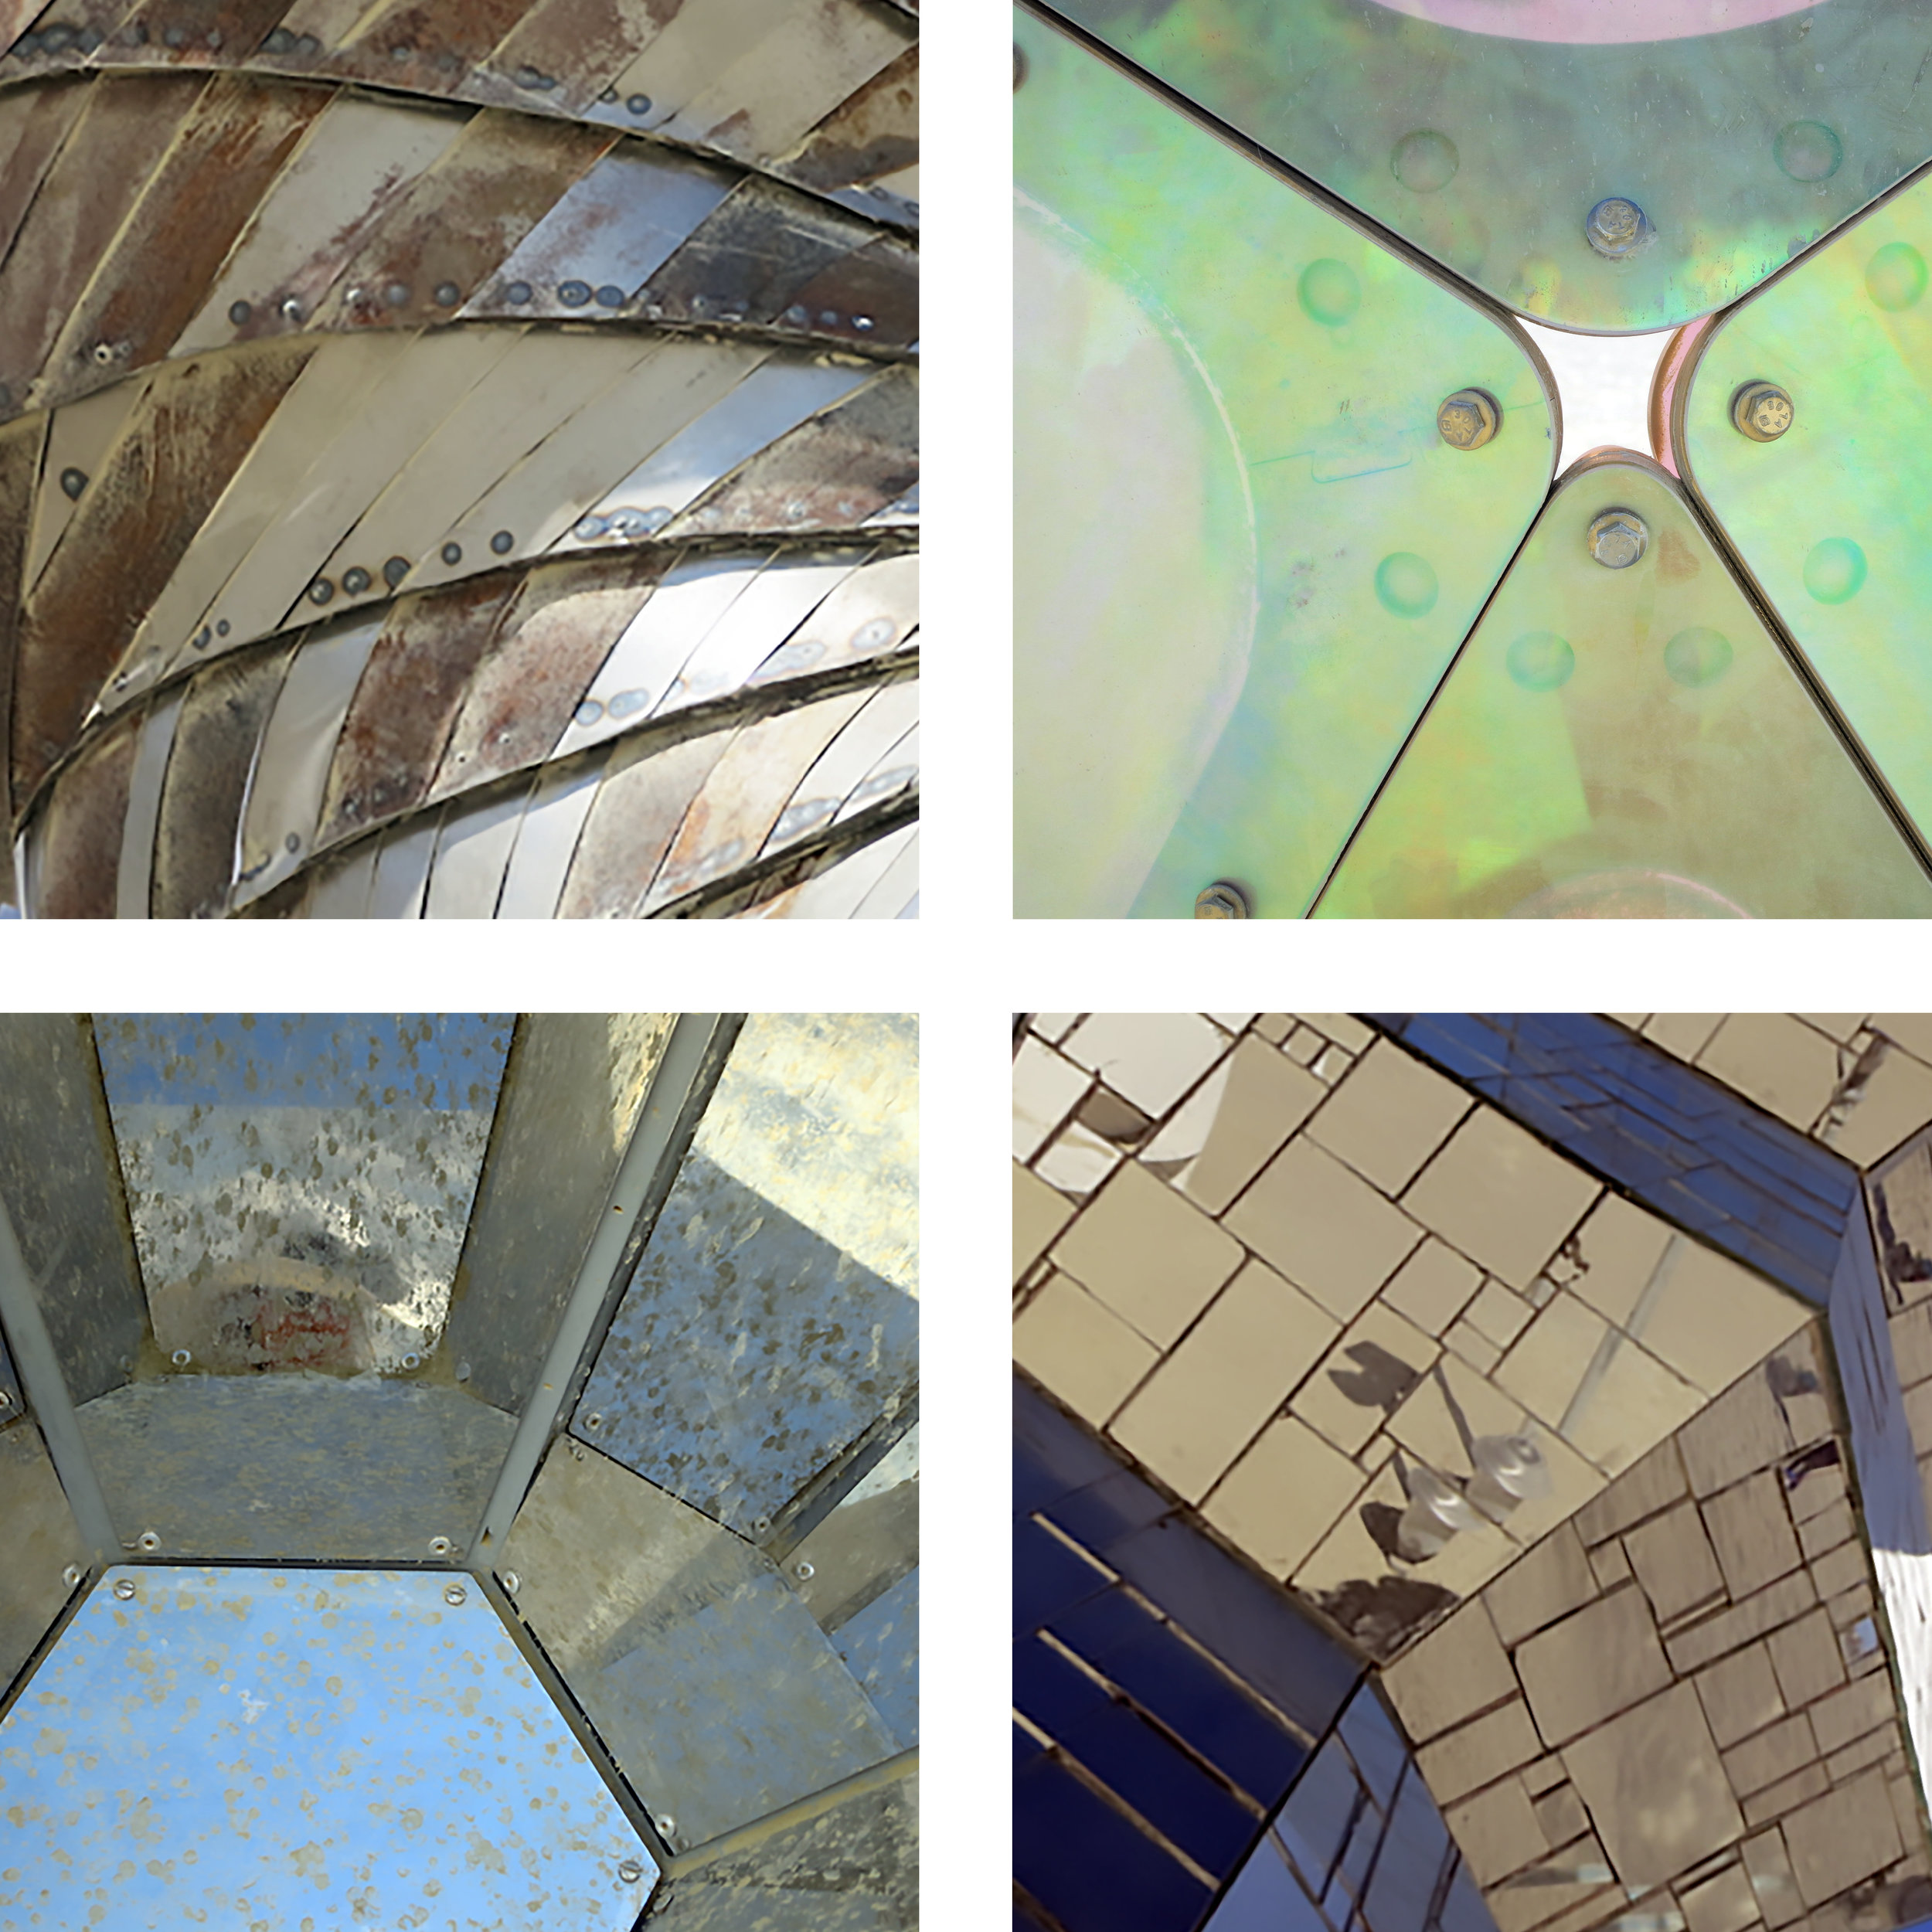 Fascinating mirrored facets, dulled by dust from the playa.